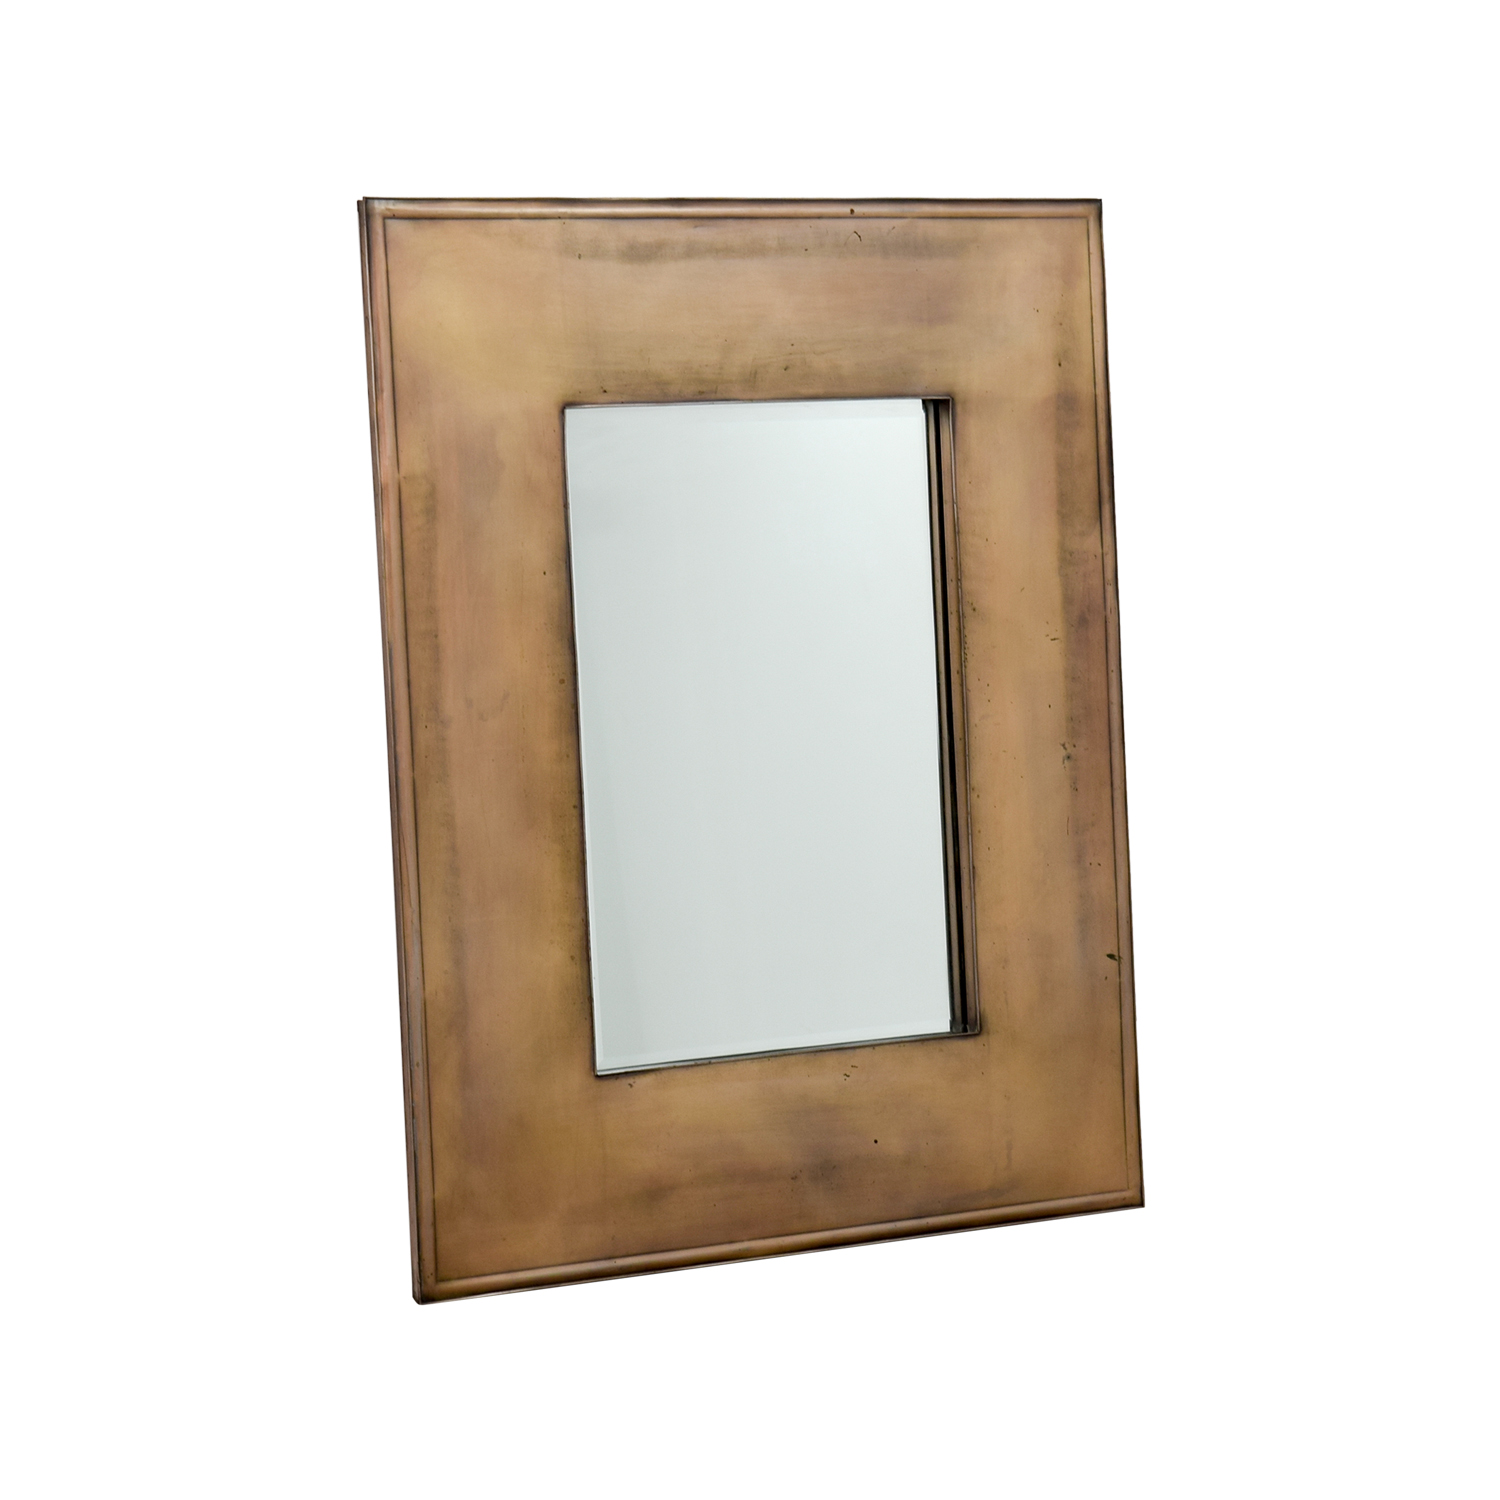 buy Crate & Barrel Metal Frame Mirror Crate & Barrel Mirrors